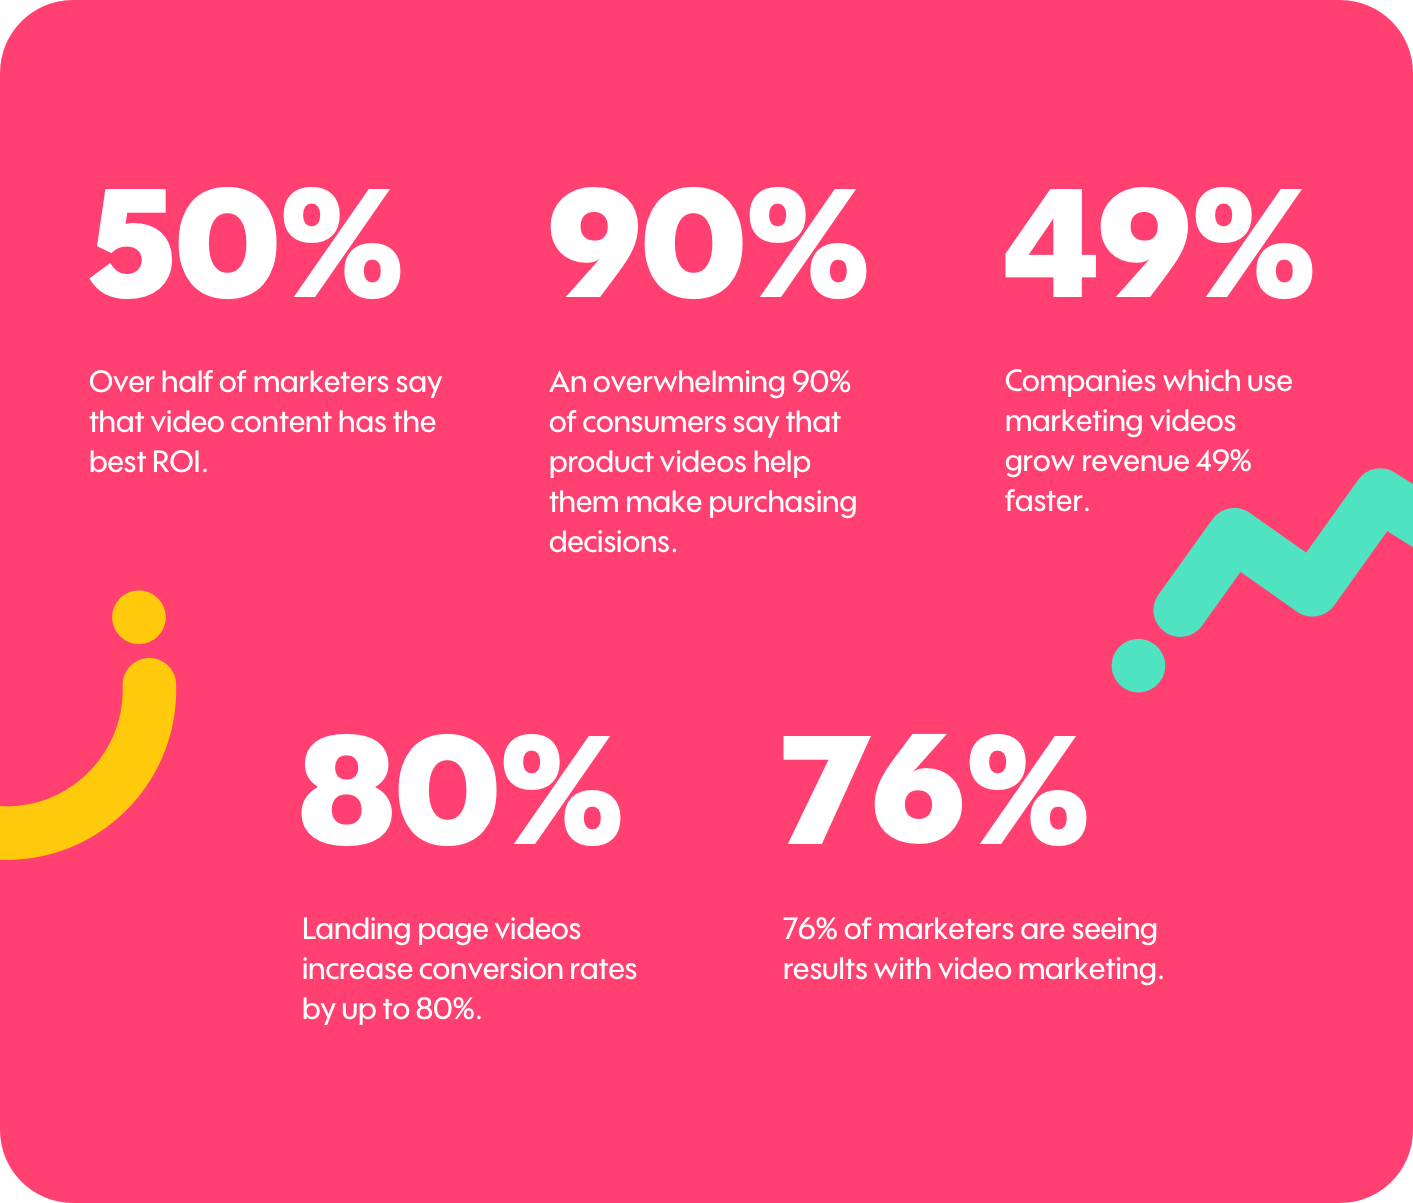 Video Marketing Stats from Survey